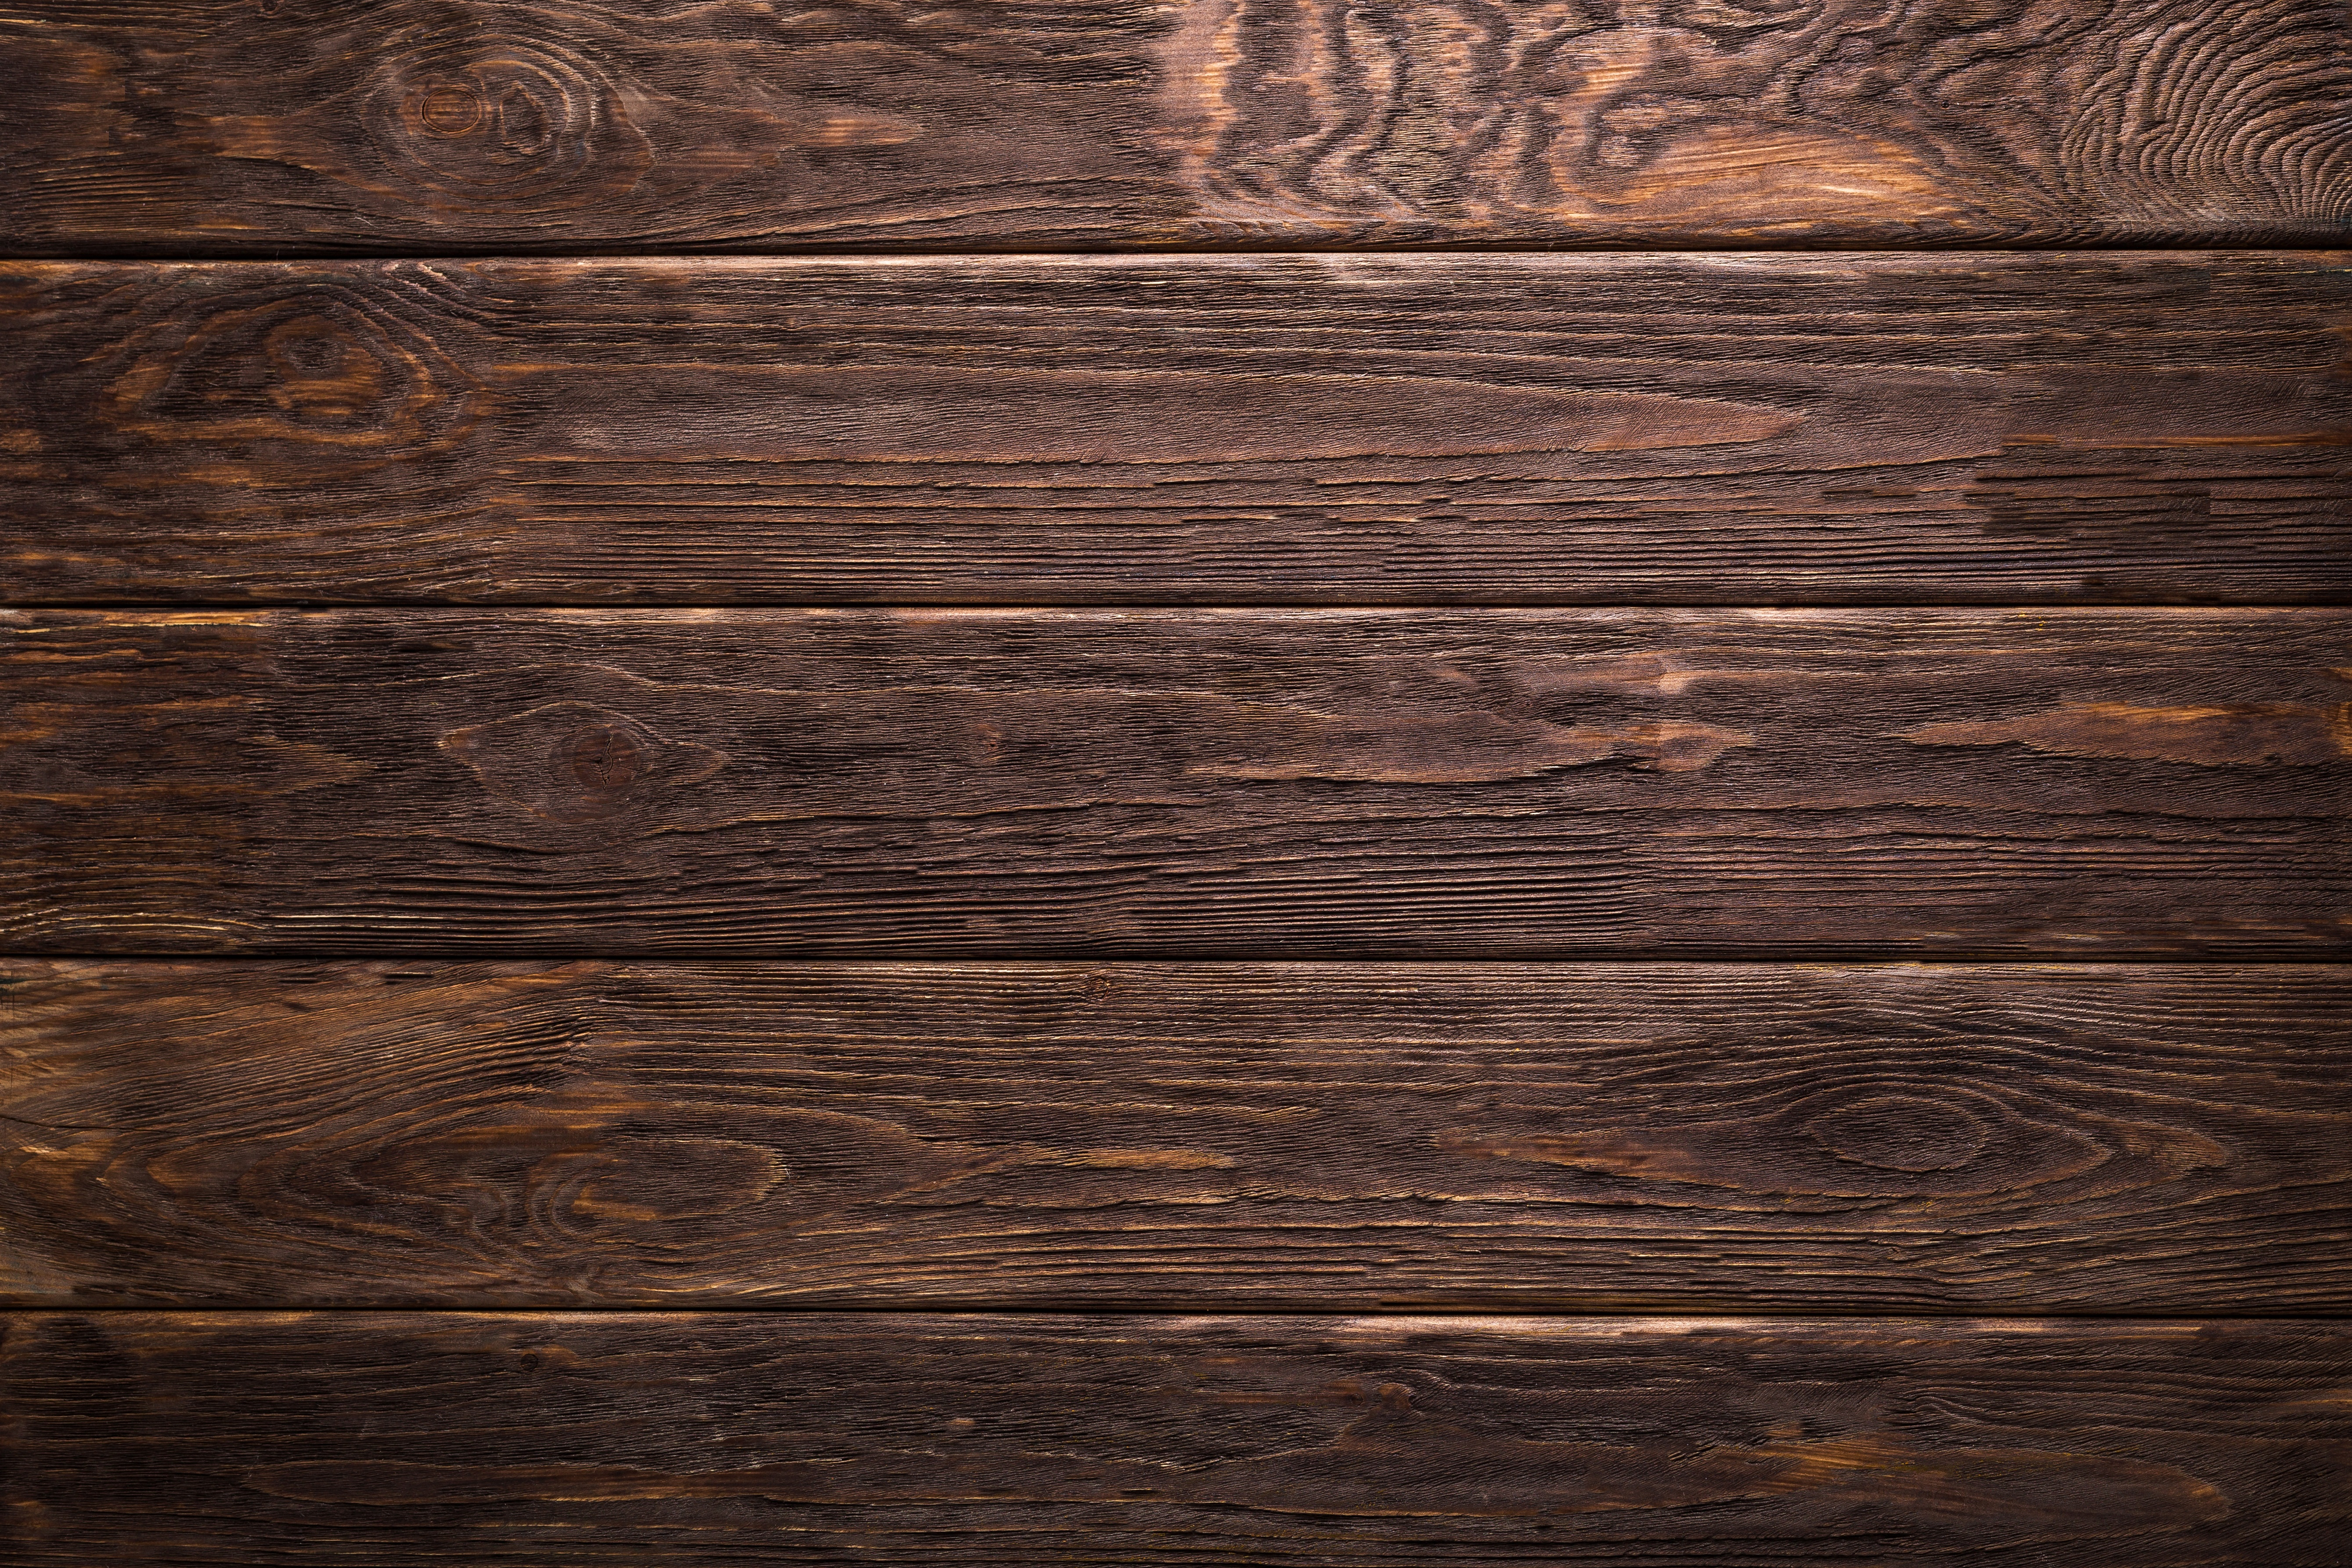 Free stock photo of background boards brown